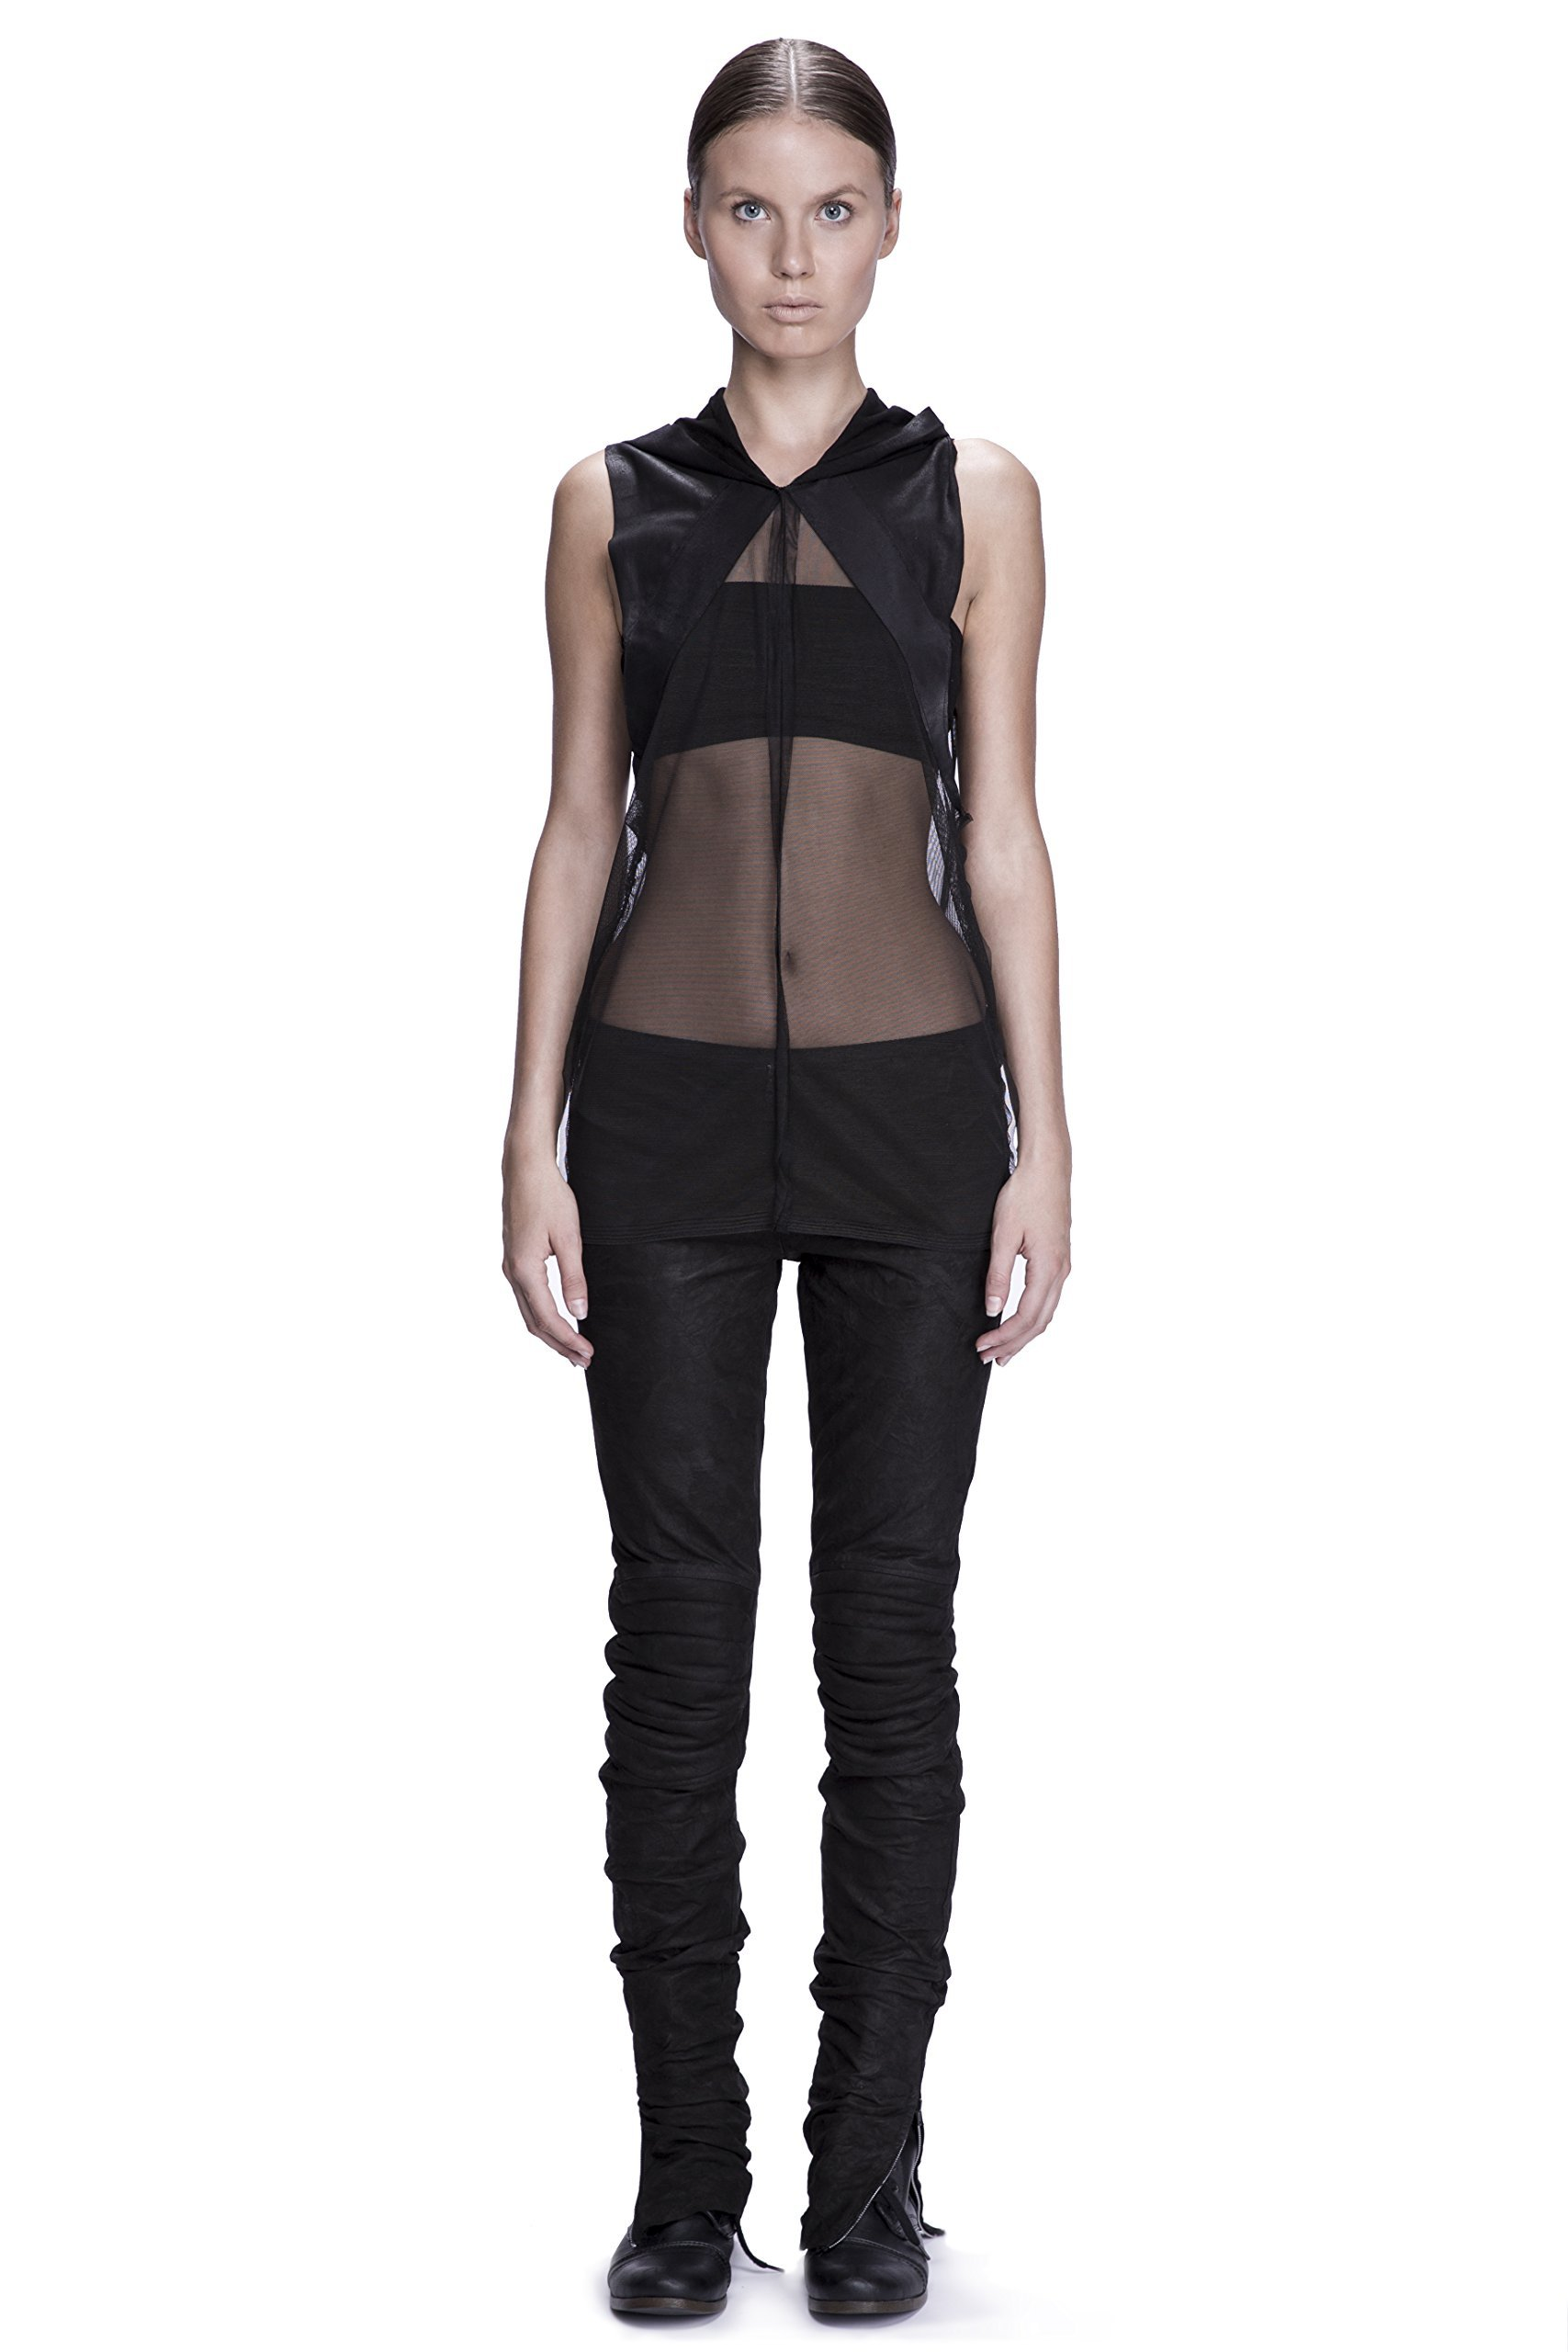 Unisex Leather and Mesh Hooded Tank Top